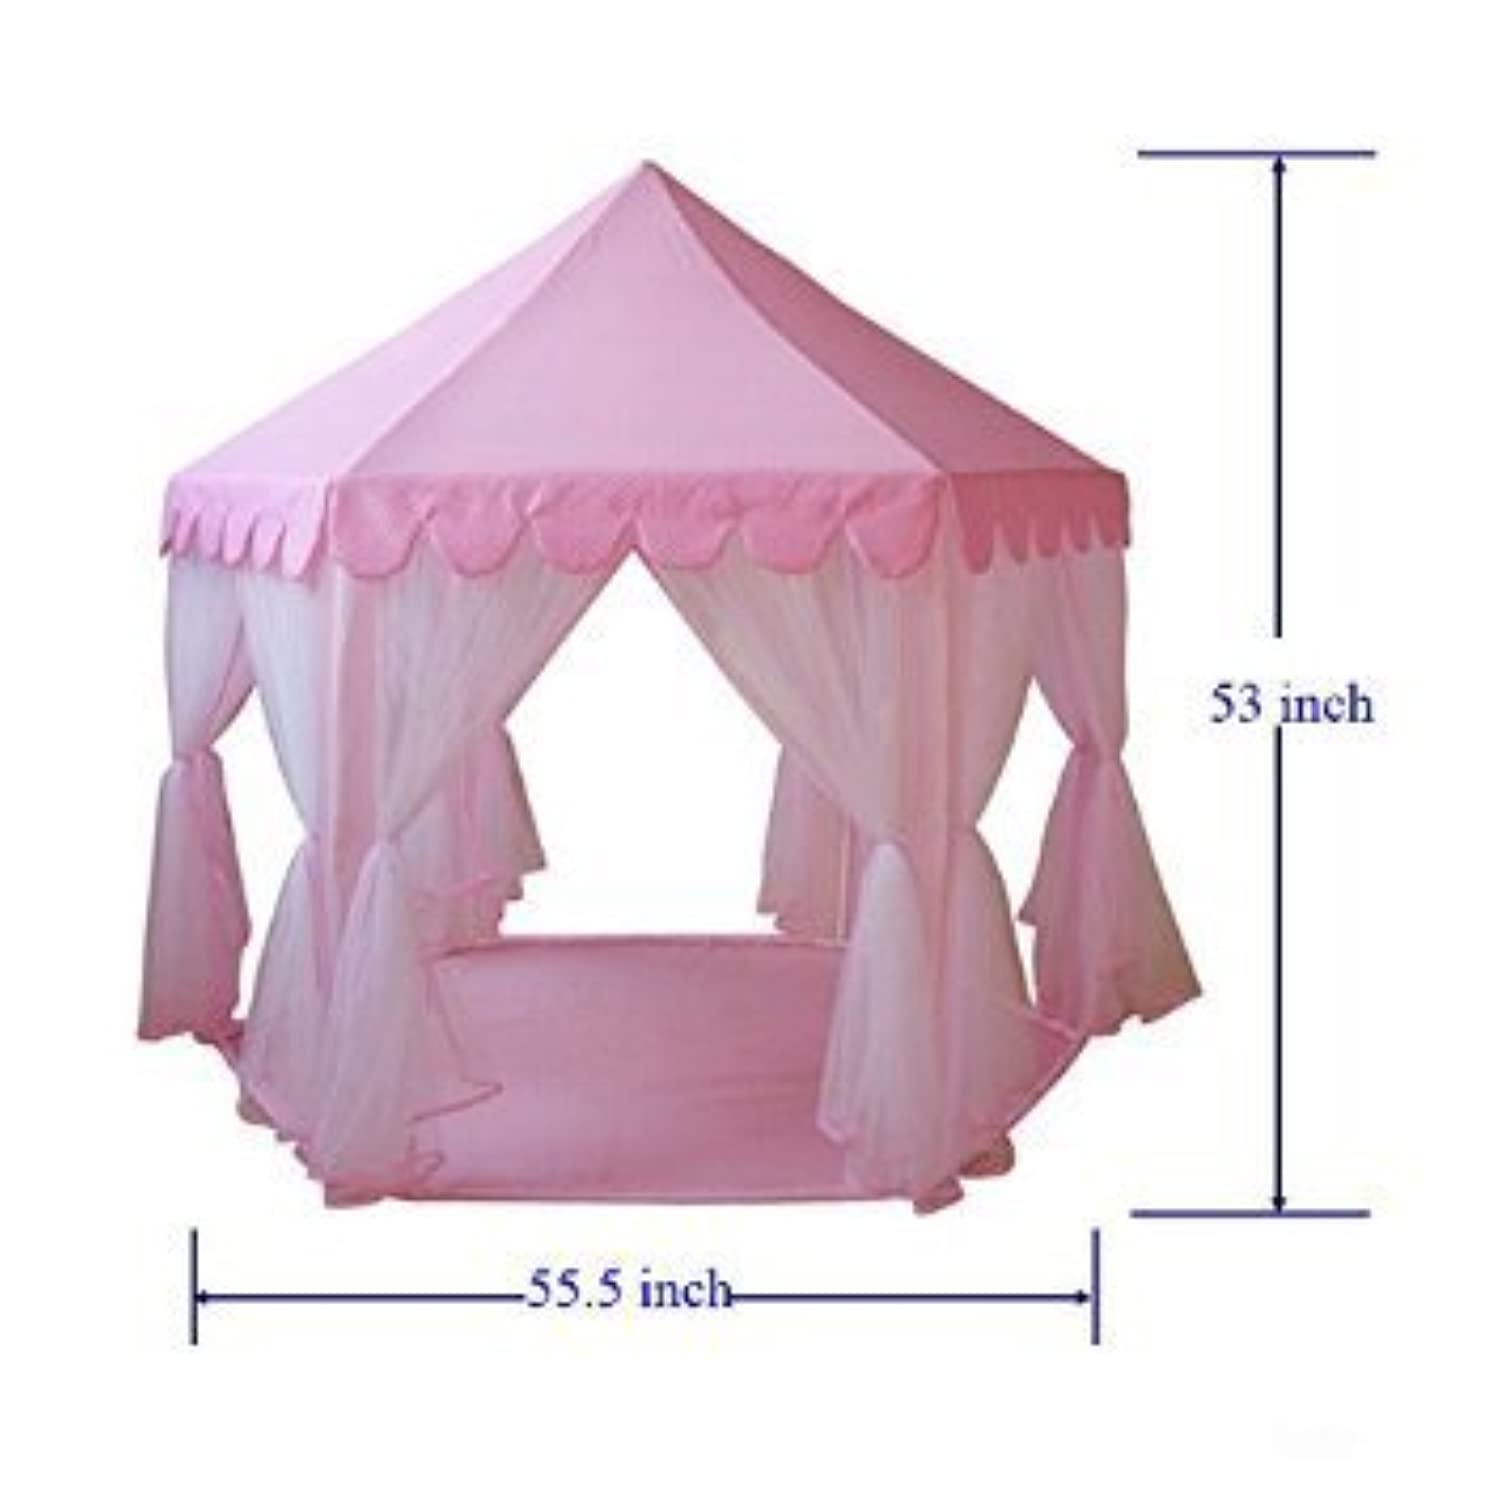 GreEco Pop Up Foldable Mongolianyurts Castle Play Tent Extra Large - Pink [並行輸入品]